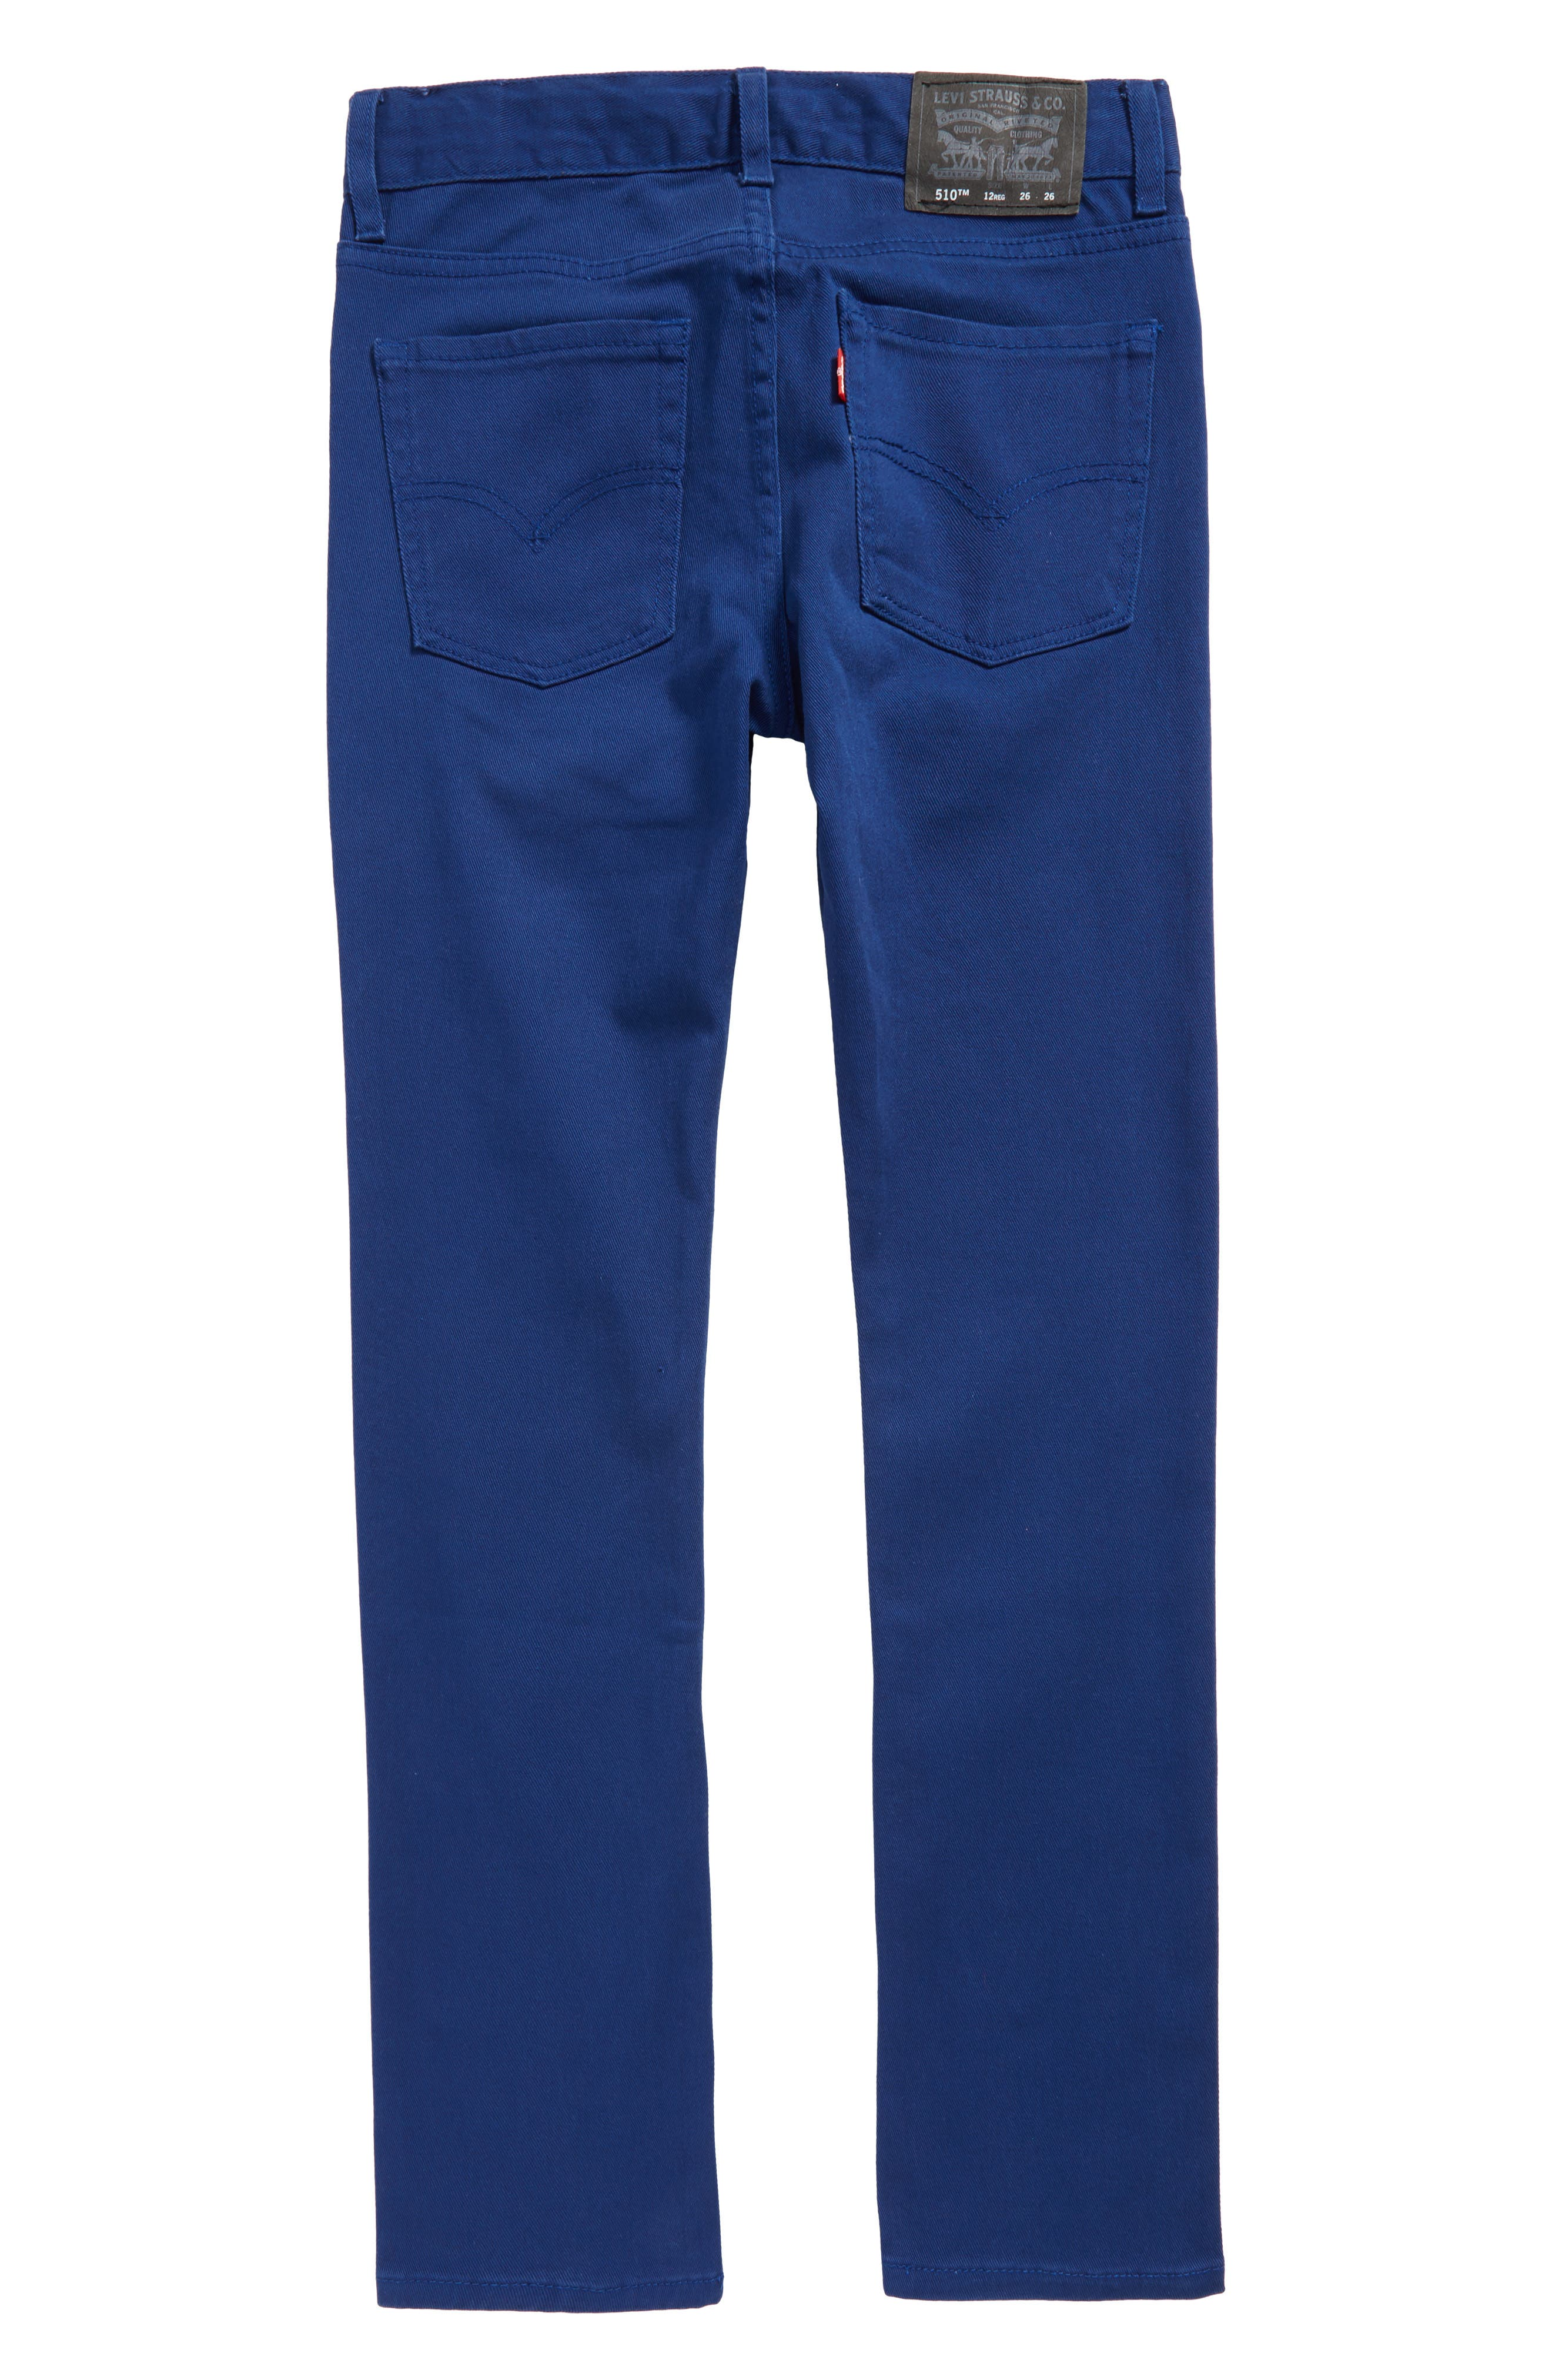 510<sup>™</sup> Skinny Fit Jeans,                             Alternate thumbnail 2, color,                             409